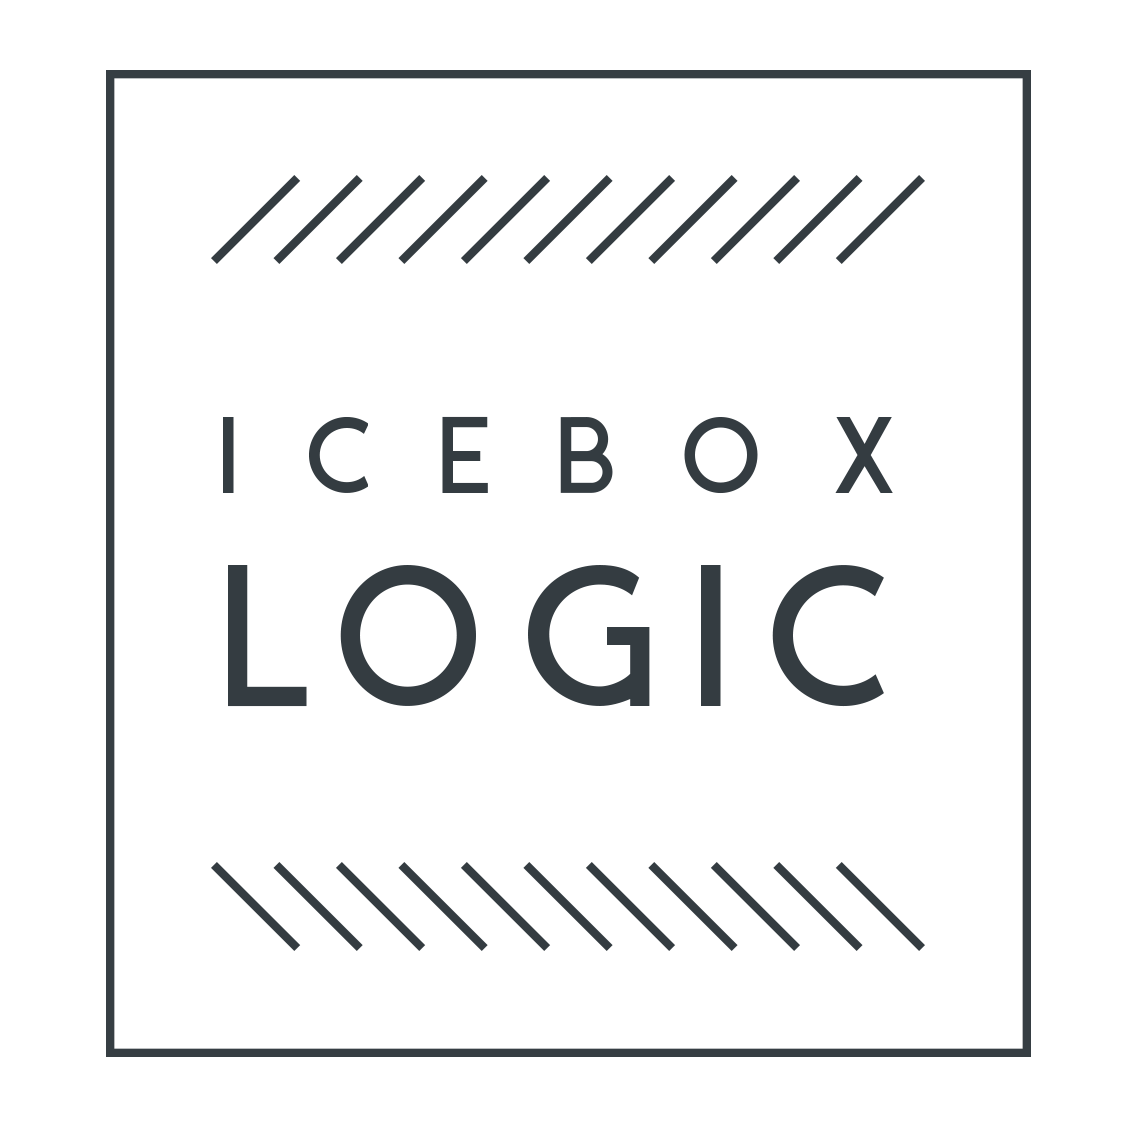 Icebox Logic